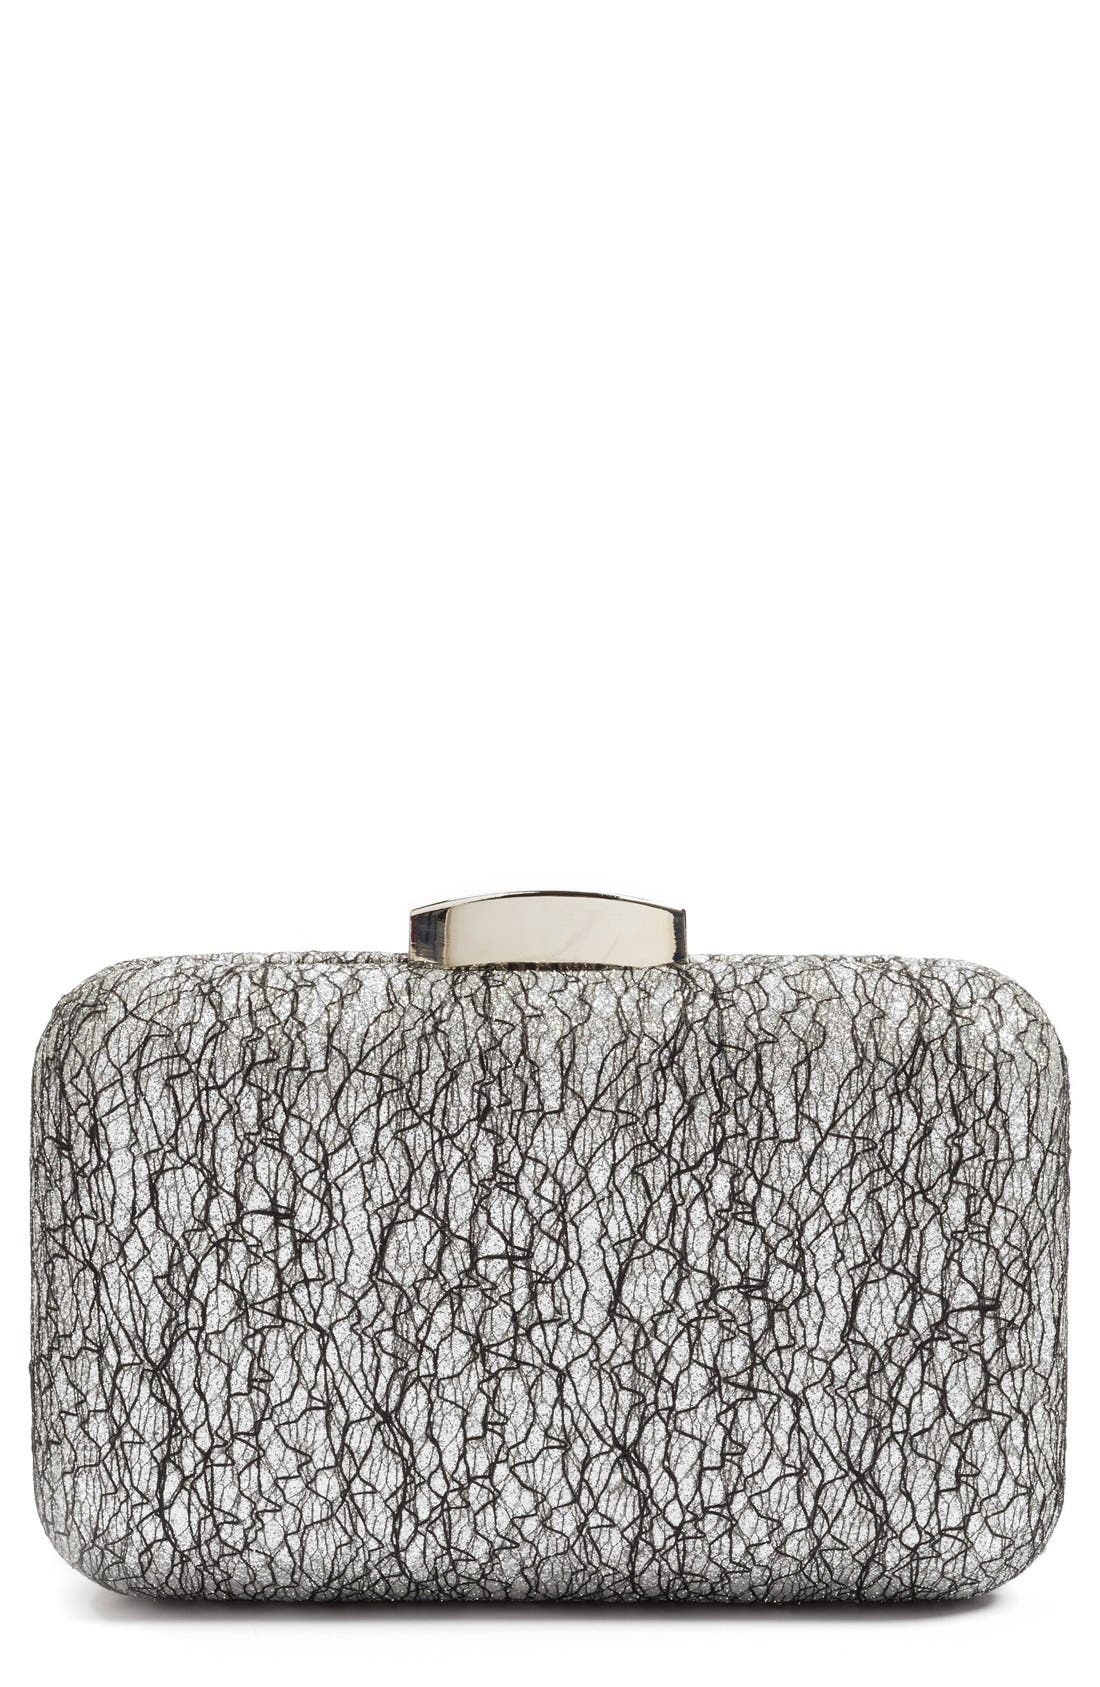 Glint Abstract Lace Clutch